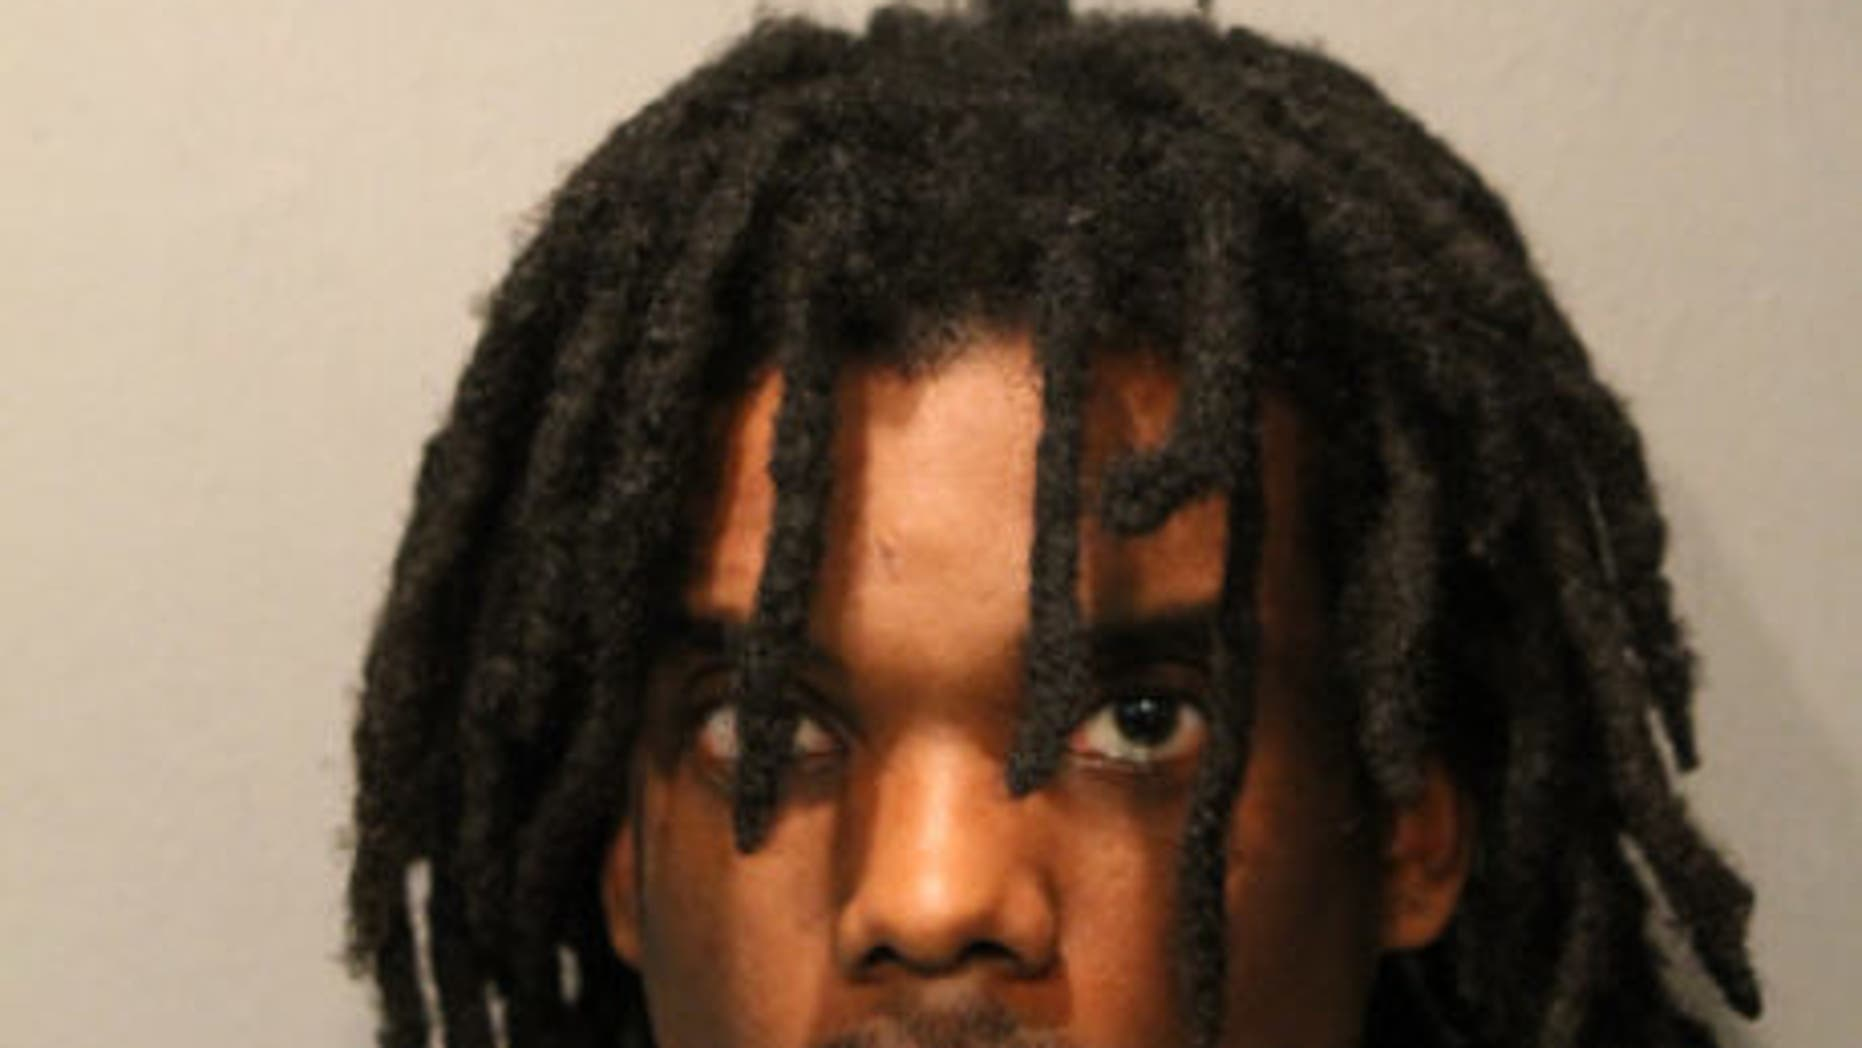 This photo provided by the Chicago Police Department shows Devon Swan.    Chicago police spokesman Anthony Guglielmi said Saturday, Feb. 18, 2017,  that Swan was charged with first-degree murder in the death of 2-year-old Lavontay White. Lavontay's uncle, 26-year-old Lazaric Collins, also was killed in Tuesday's shooting, which left a pregnant woman wounded.   (Chicago Police Department via AP)